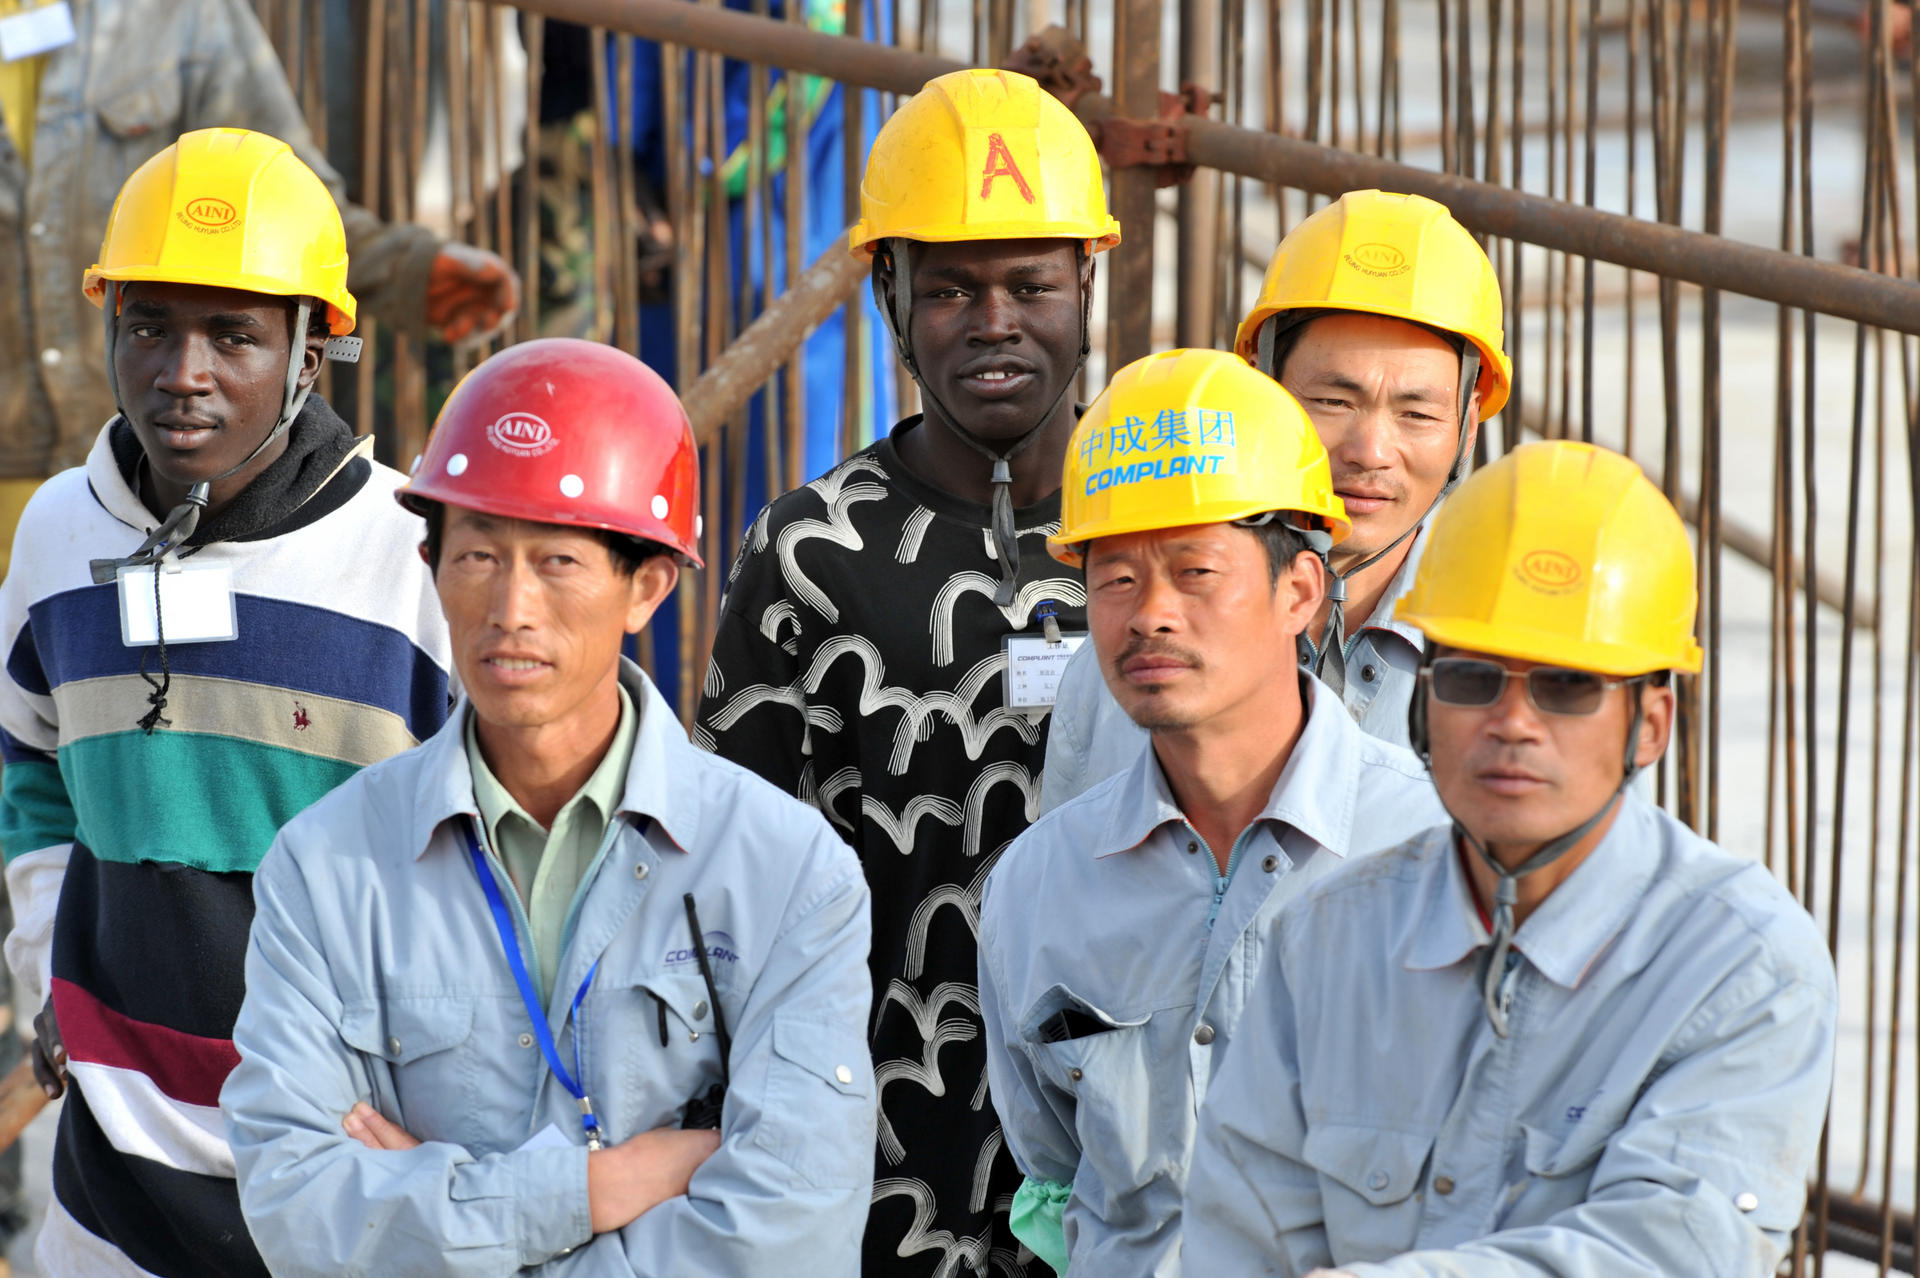 Is China colonising Africa?